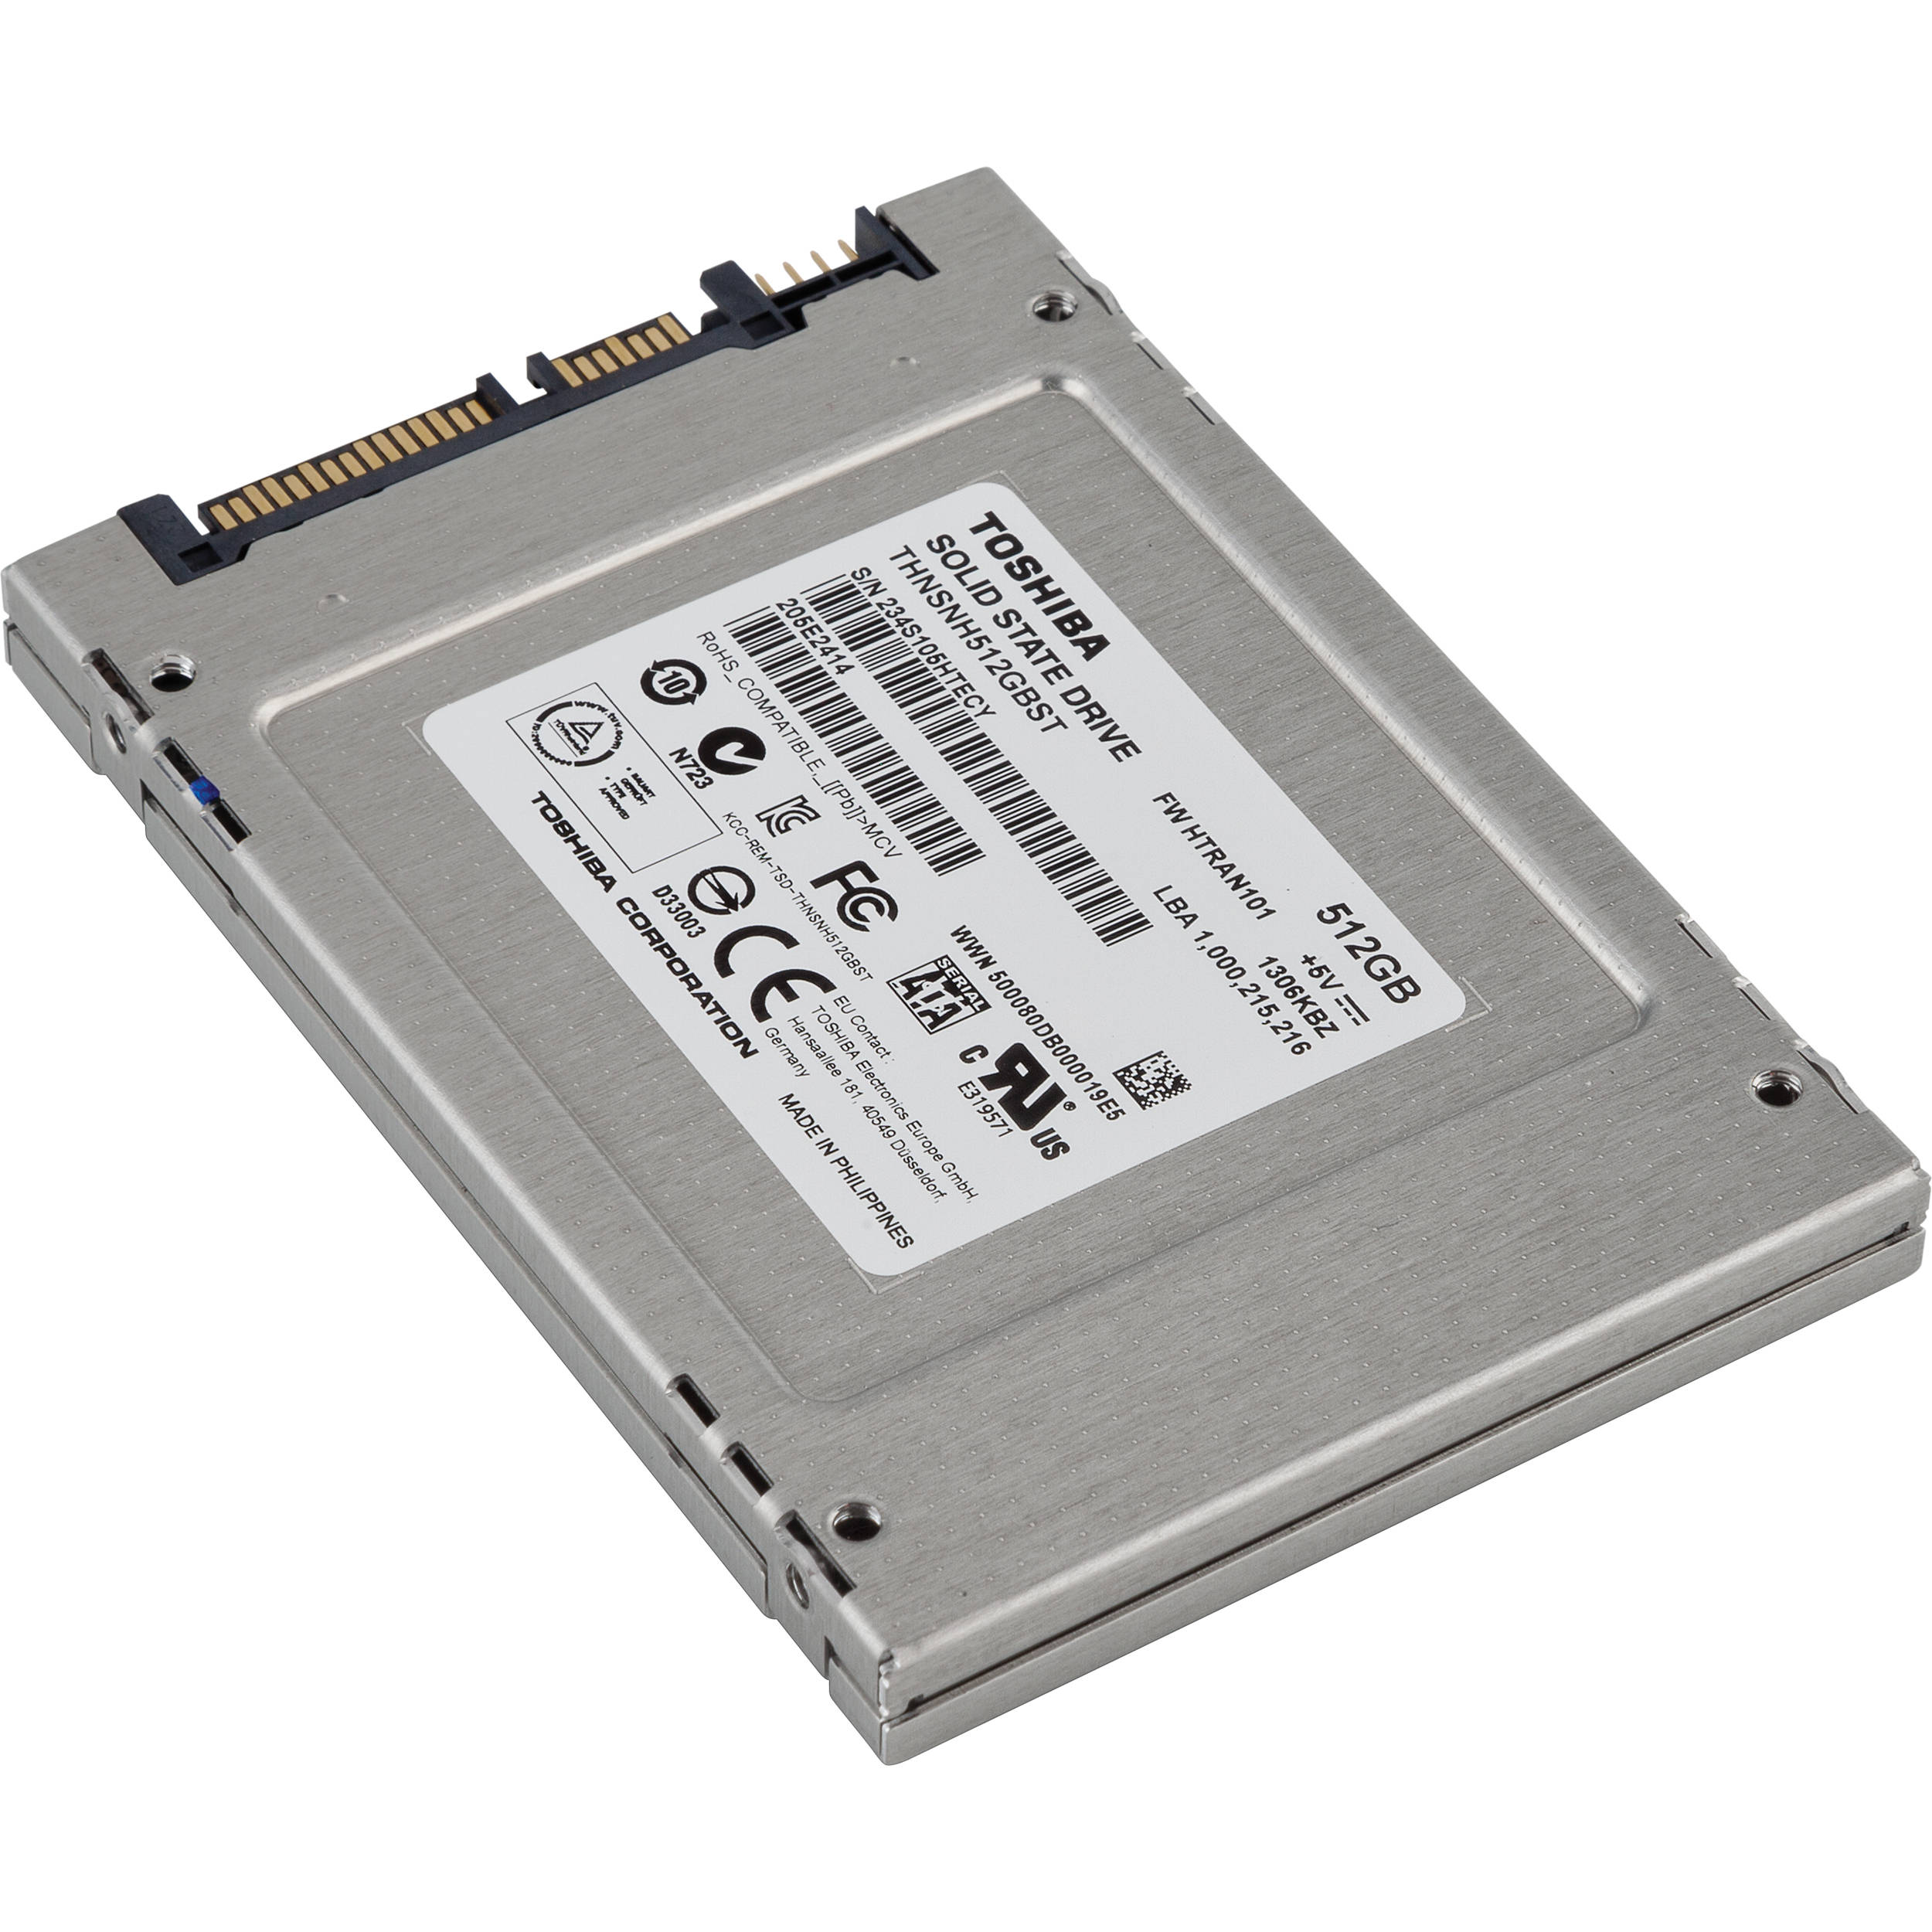 Toshiba 512GB Q Series Internal Solid State Drive HDTS251XZSTA